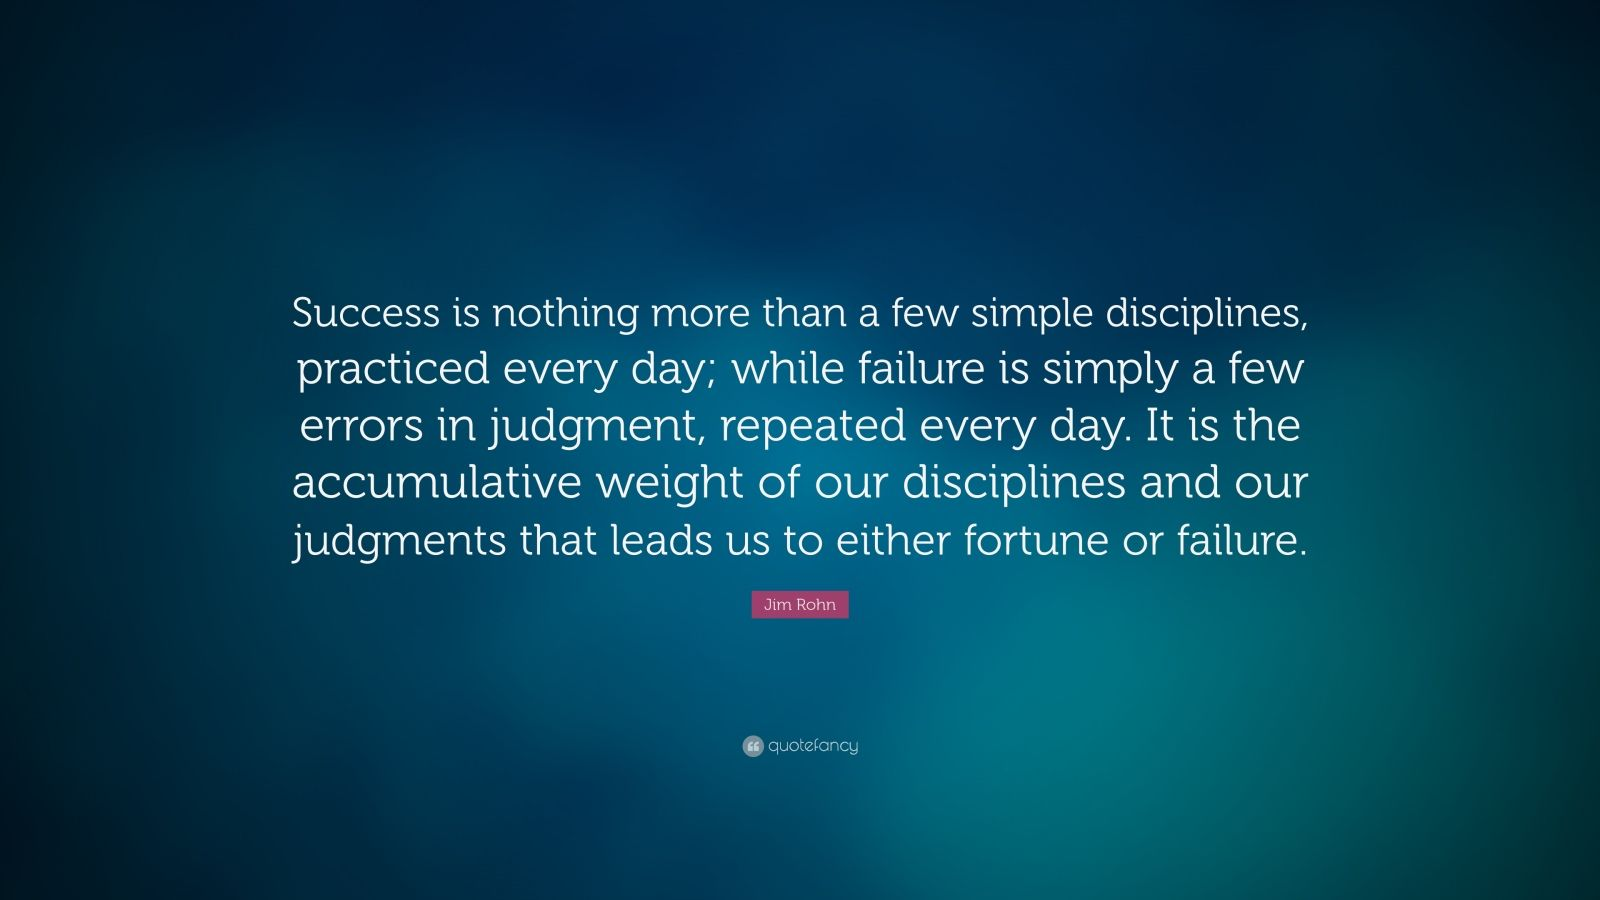 "Jim Rohn Quote: ""Success is nothing more than a few simple disciplines, practiced every day; while failure is simply a few errors in judgment, repeated every day. It is the accumulative weight of our disciplines and our judgments that leads us to either fortune or failure."""